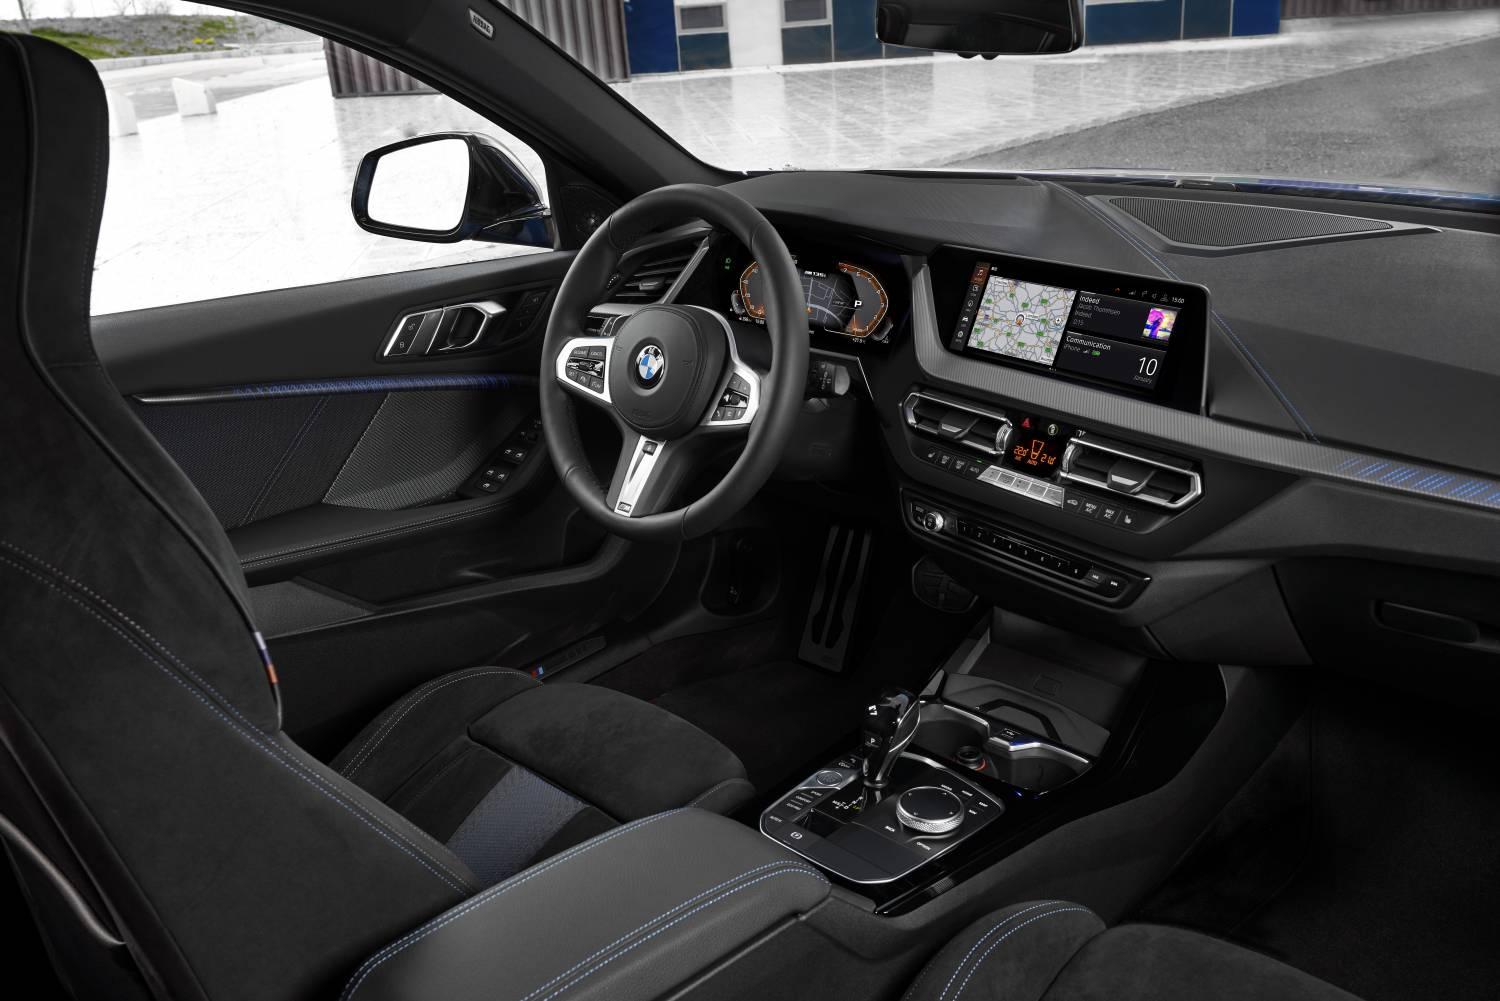 The 1 M135i Interior Dashboard